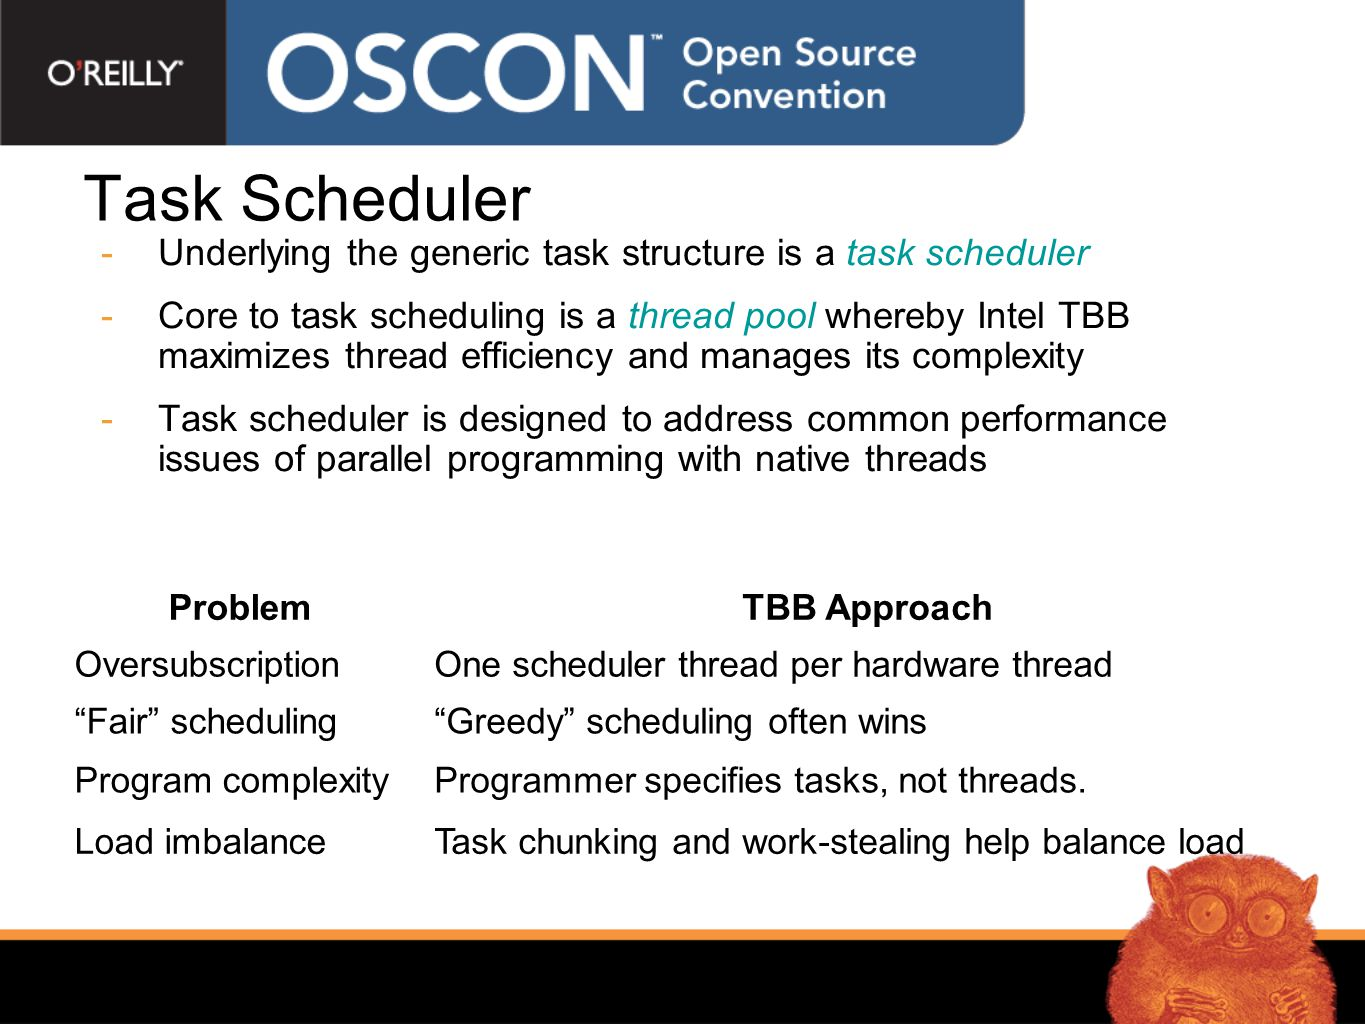 Task Scheduler  Intel TBB task interest is managed in the task_scheduler_init object  Thread pool construction also tied to the life of this object  Nested construction is reference counted, low overhead  Put Init object scope high to avoid pool reconstruction overhead  Construction specifies thread pool size automatic, explicit or deferred  Dynamic init object lifetime management offers thread pool size control #include tbb/task_scheduler_init.h using namespace tbb; int main() { task_scheduler_init init; ….